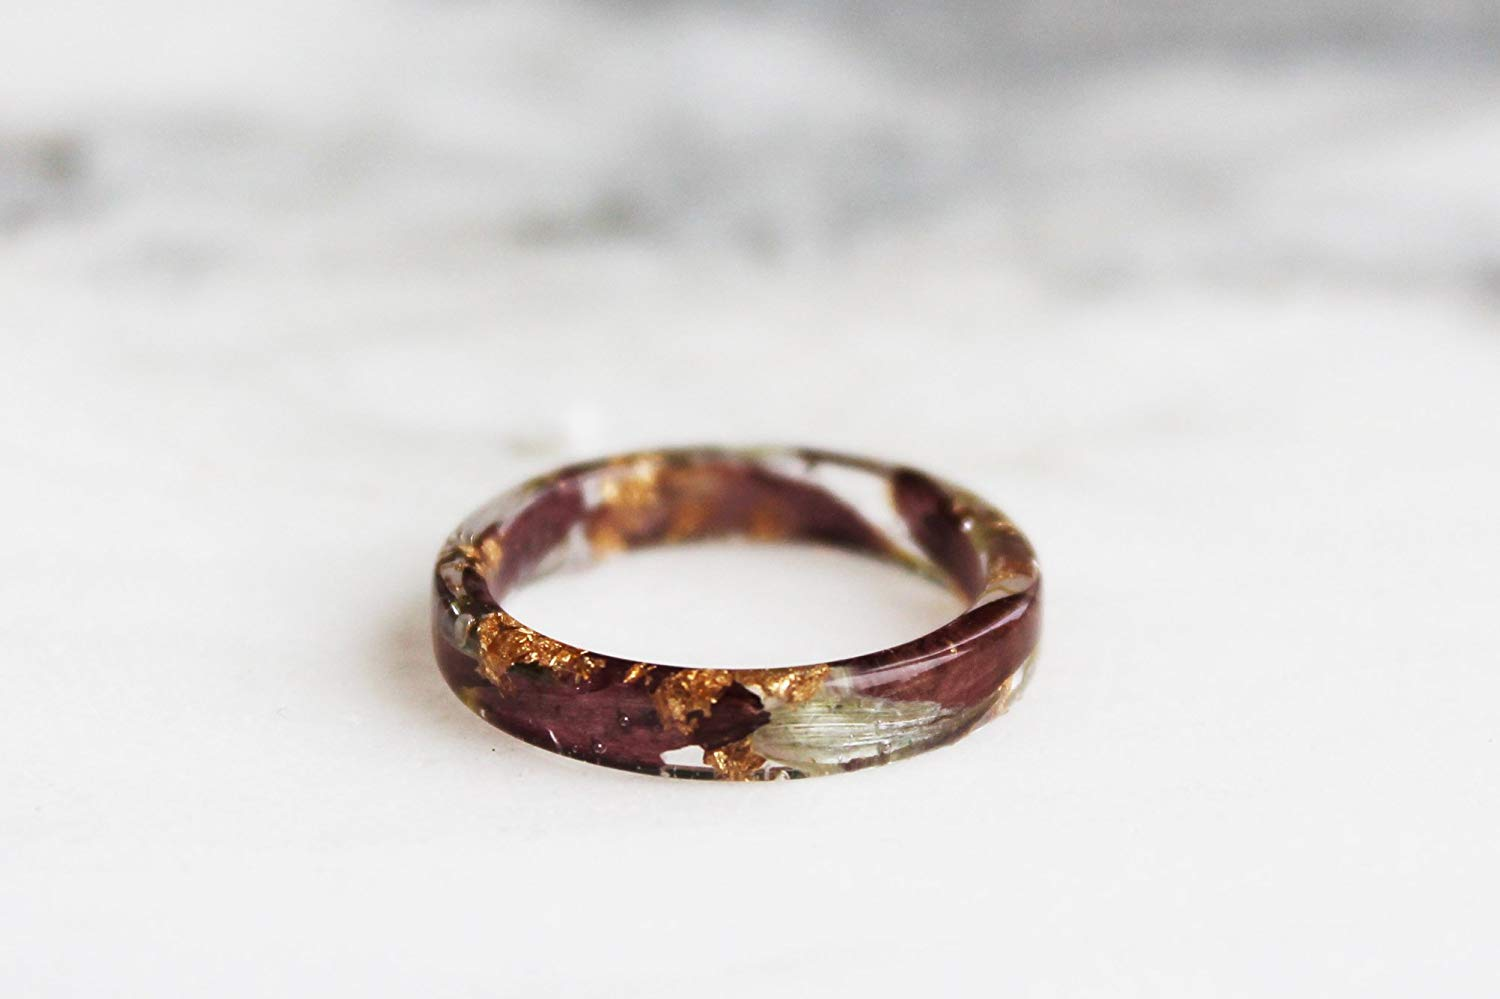 Nature Inspired Thin Resin Ring with Pressed Petals, Leaves and Gold/Copper/Silver Flakes